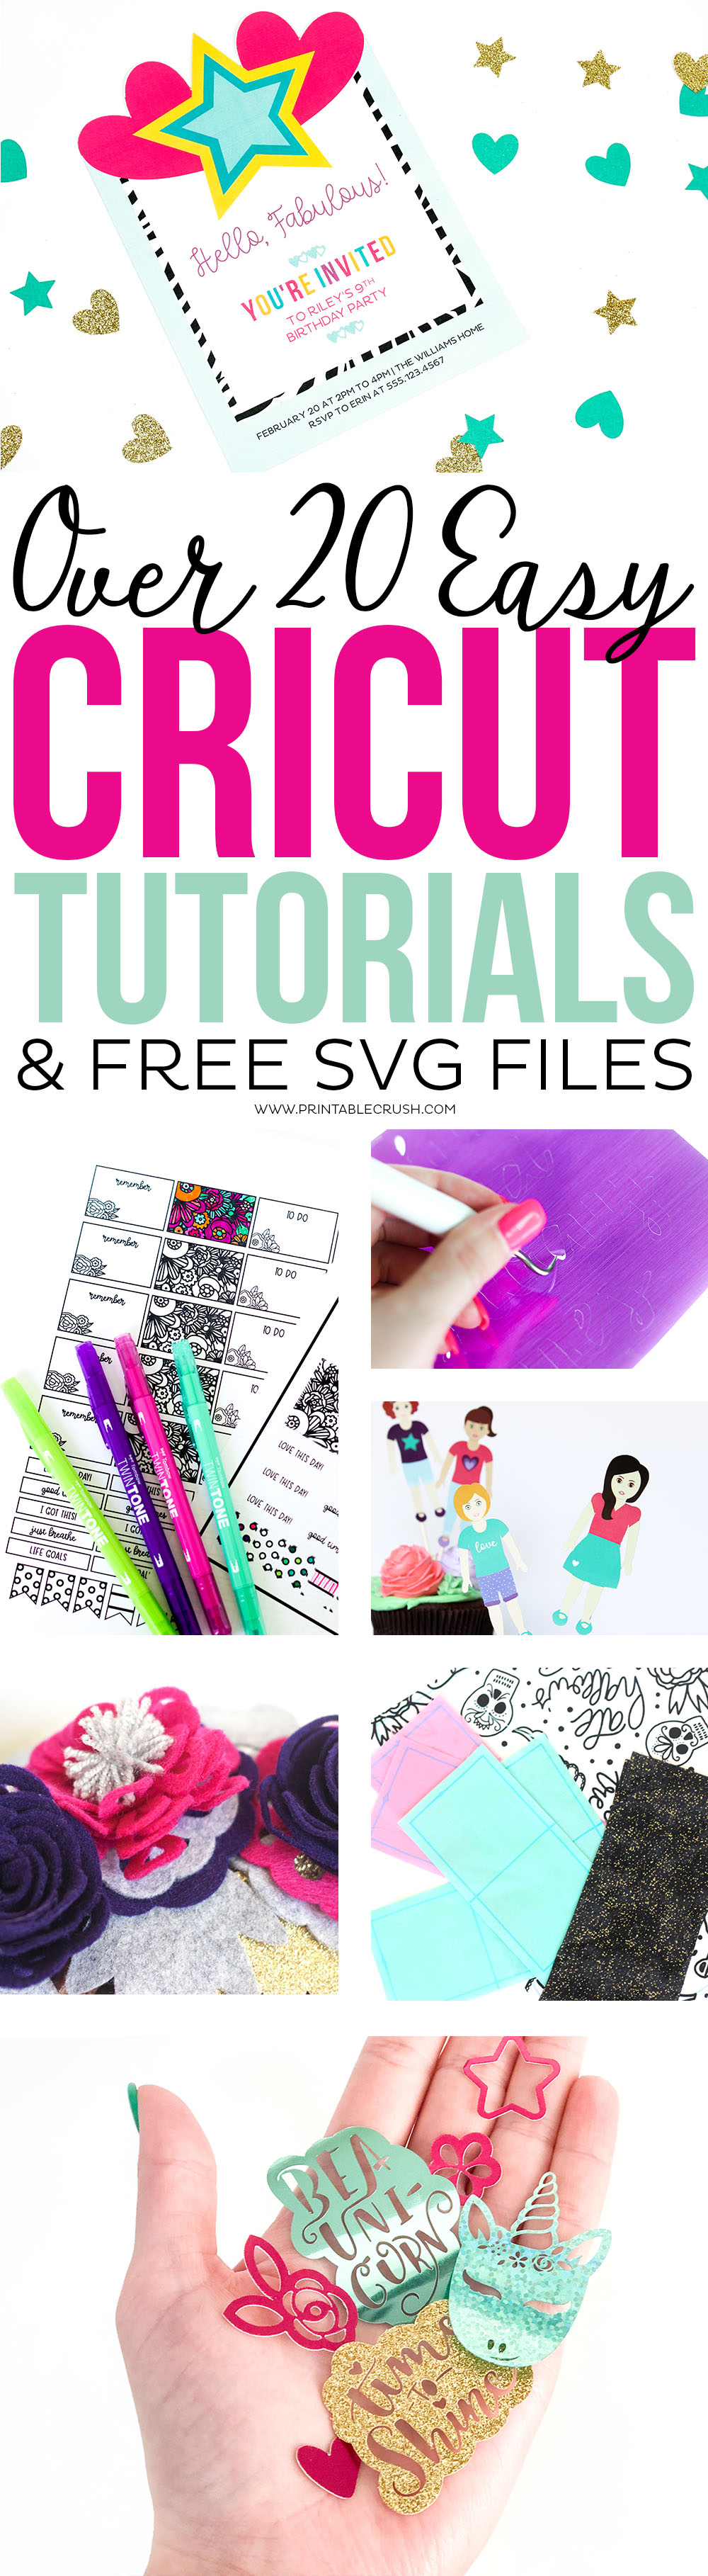 Get inspired by over 20 Easy Cricut Tutorials and Free SVG Files. You'll find design space tutorials, Cricut craft ideas, freebies, and more! via @printablecrush